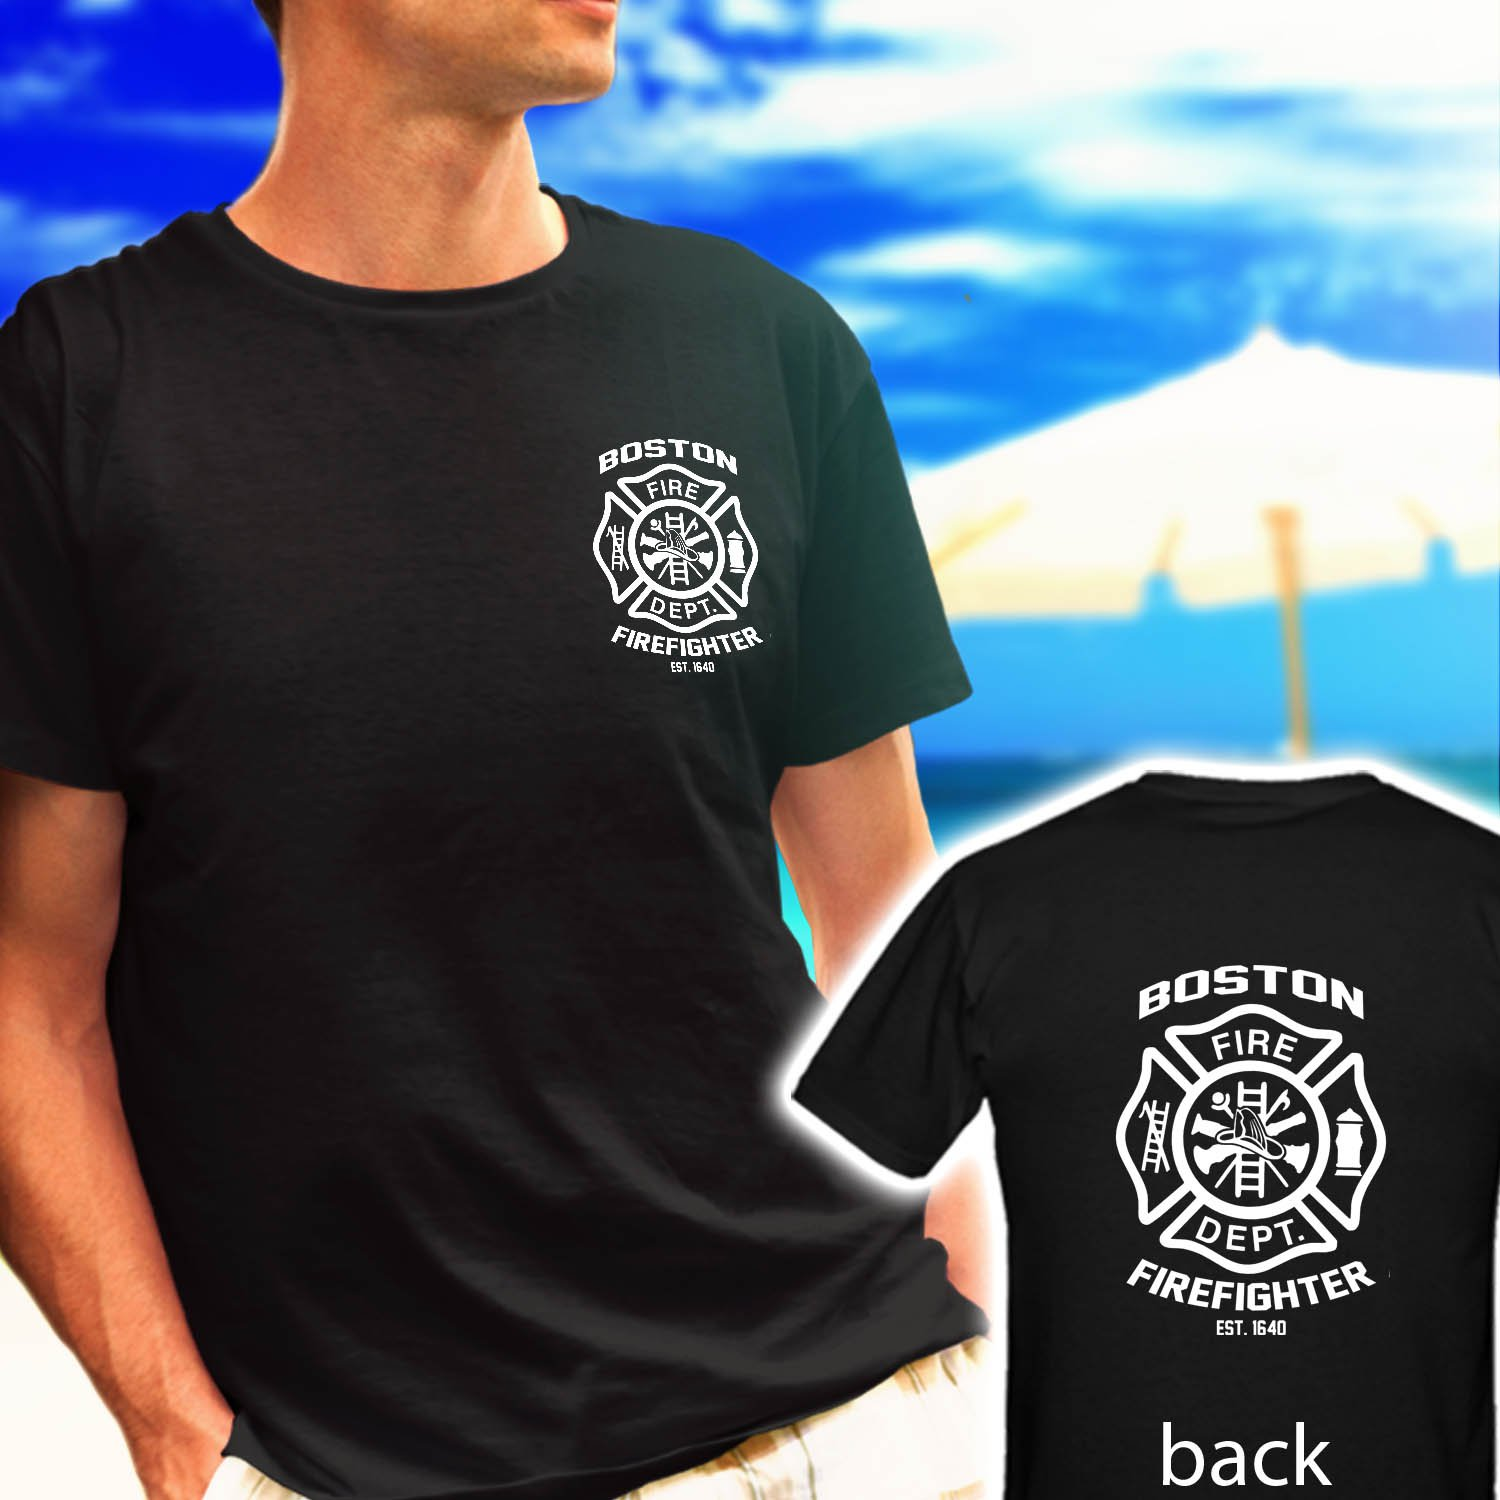 boston firefighter fire department est 1640 black t-shirt tshirt shirts tee SIZE XL